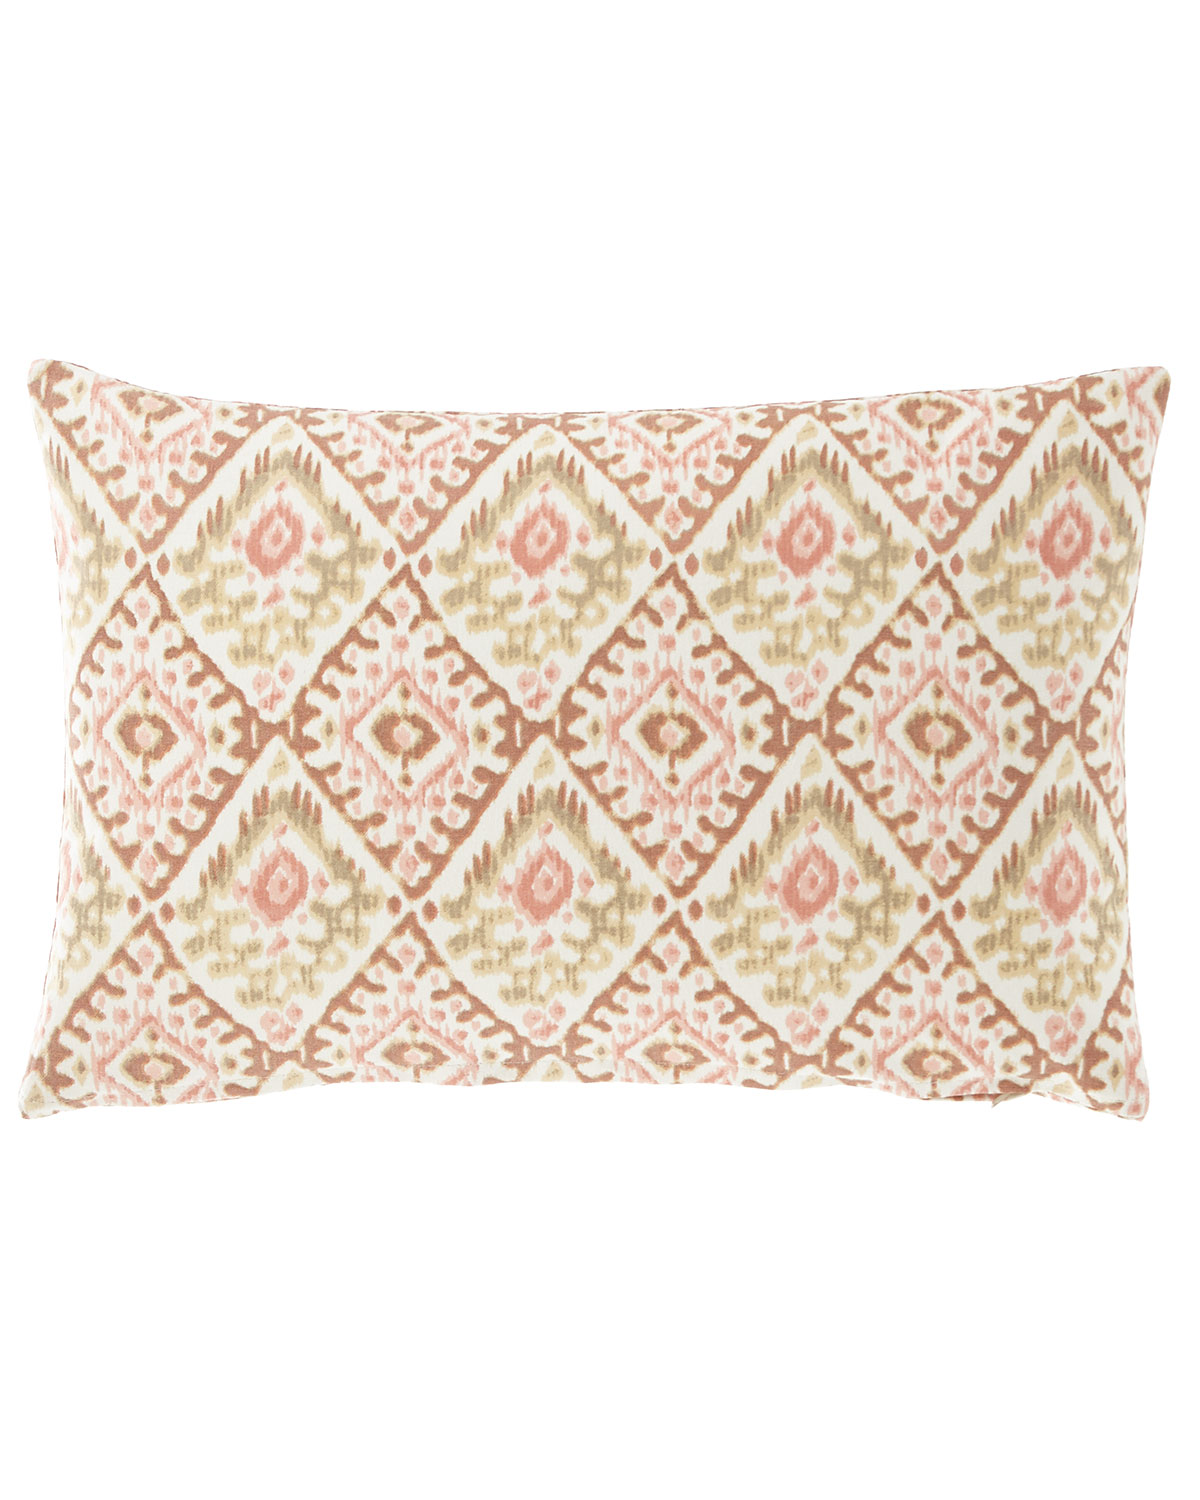 French Laundry Home Diamond Pillow 14 Quot X 20 Quot